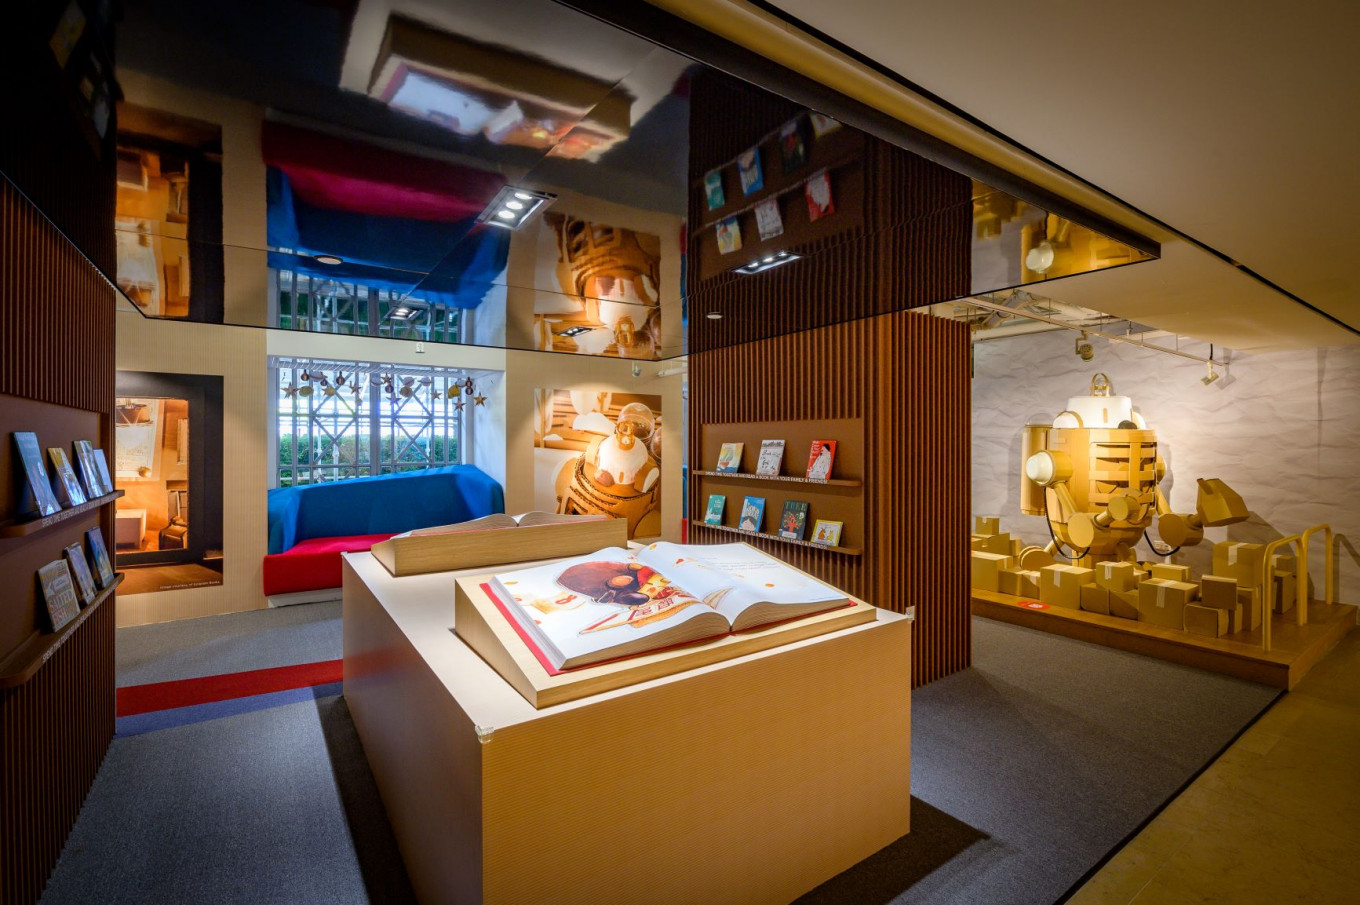 Singapore exhibition  sets to inspire young, curious minds